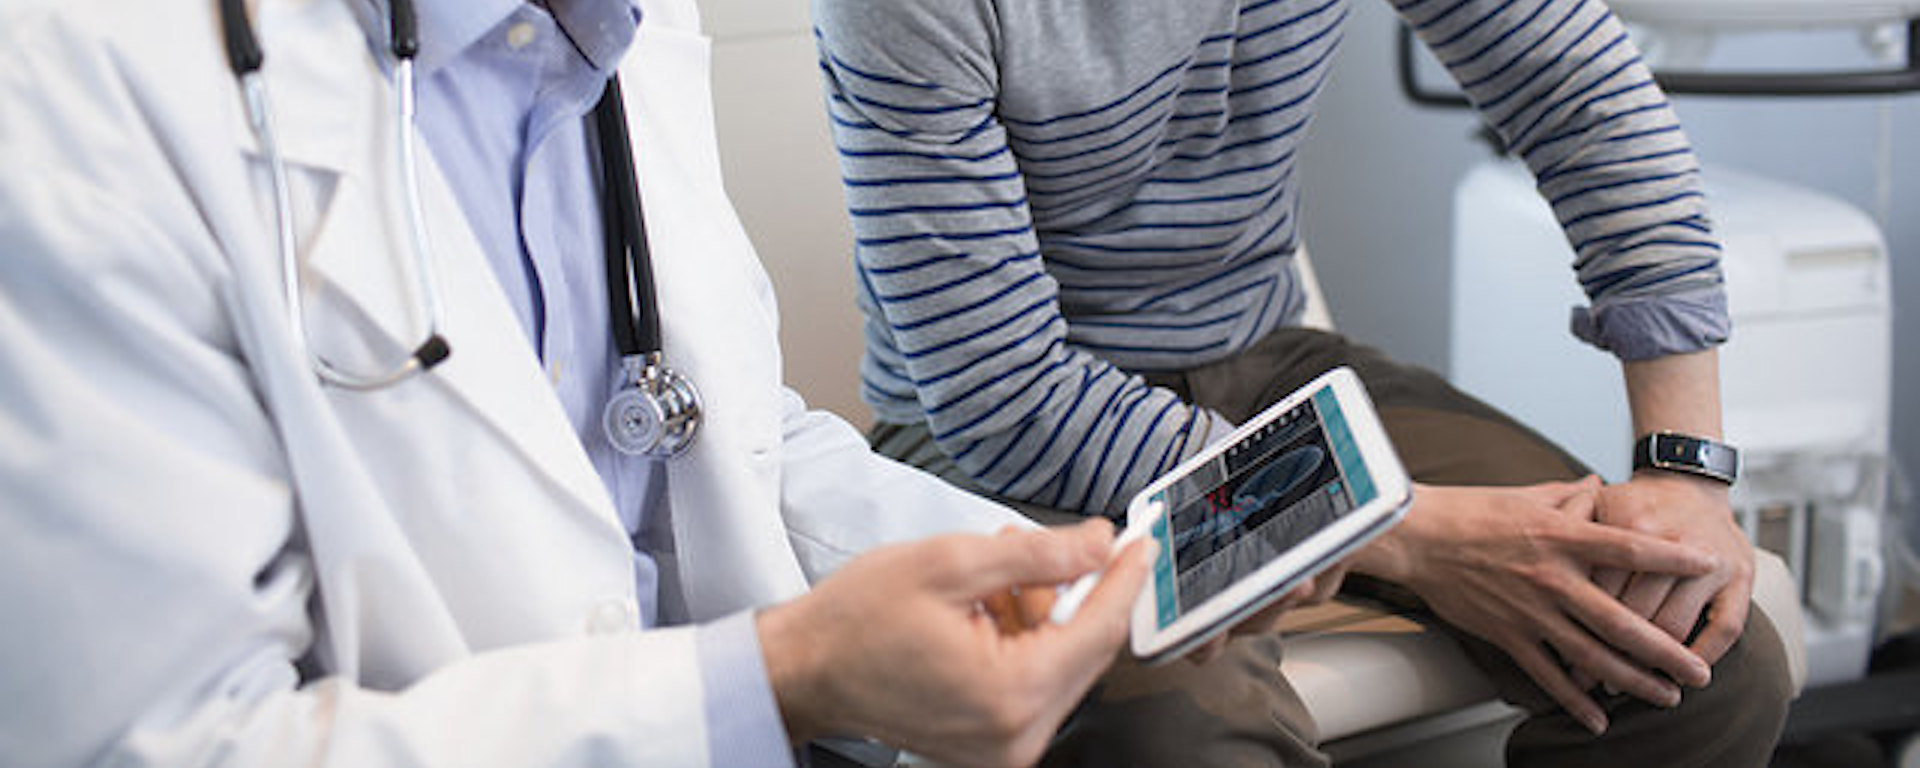 Primary Care Through Wearable Devices